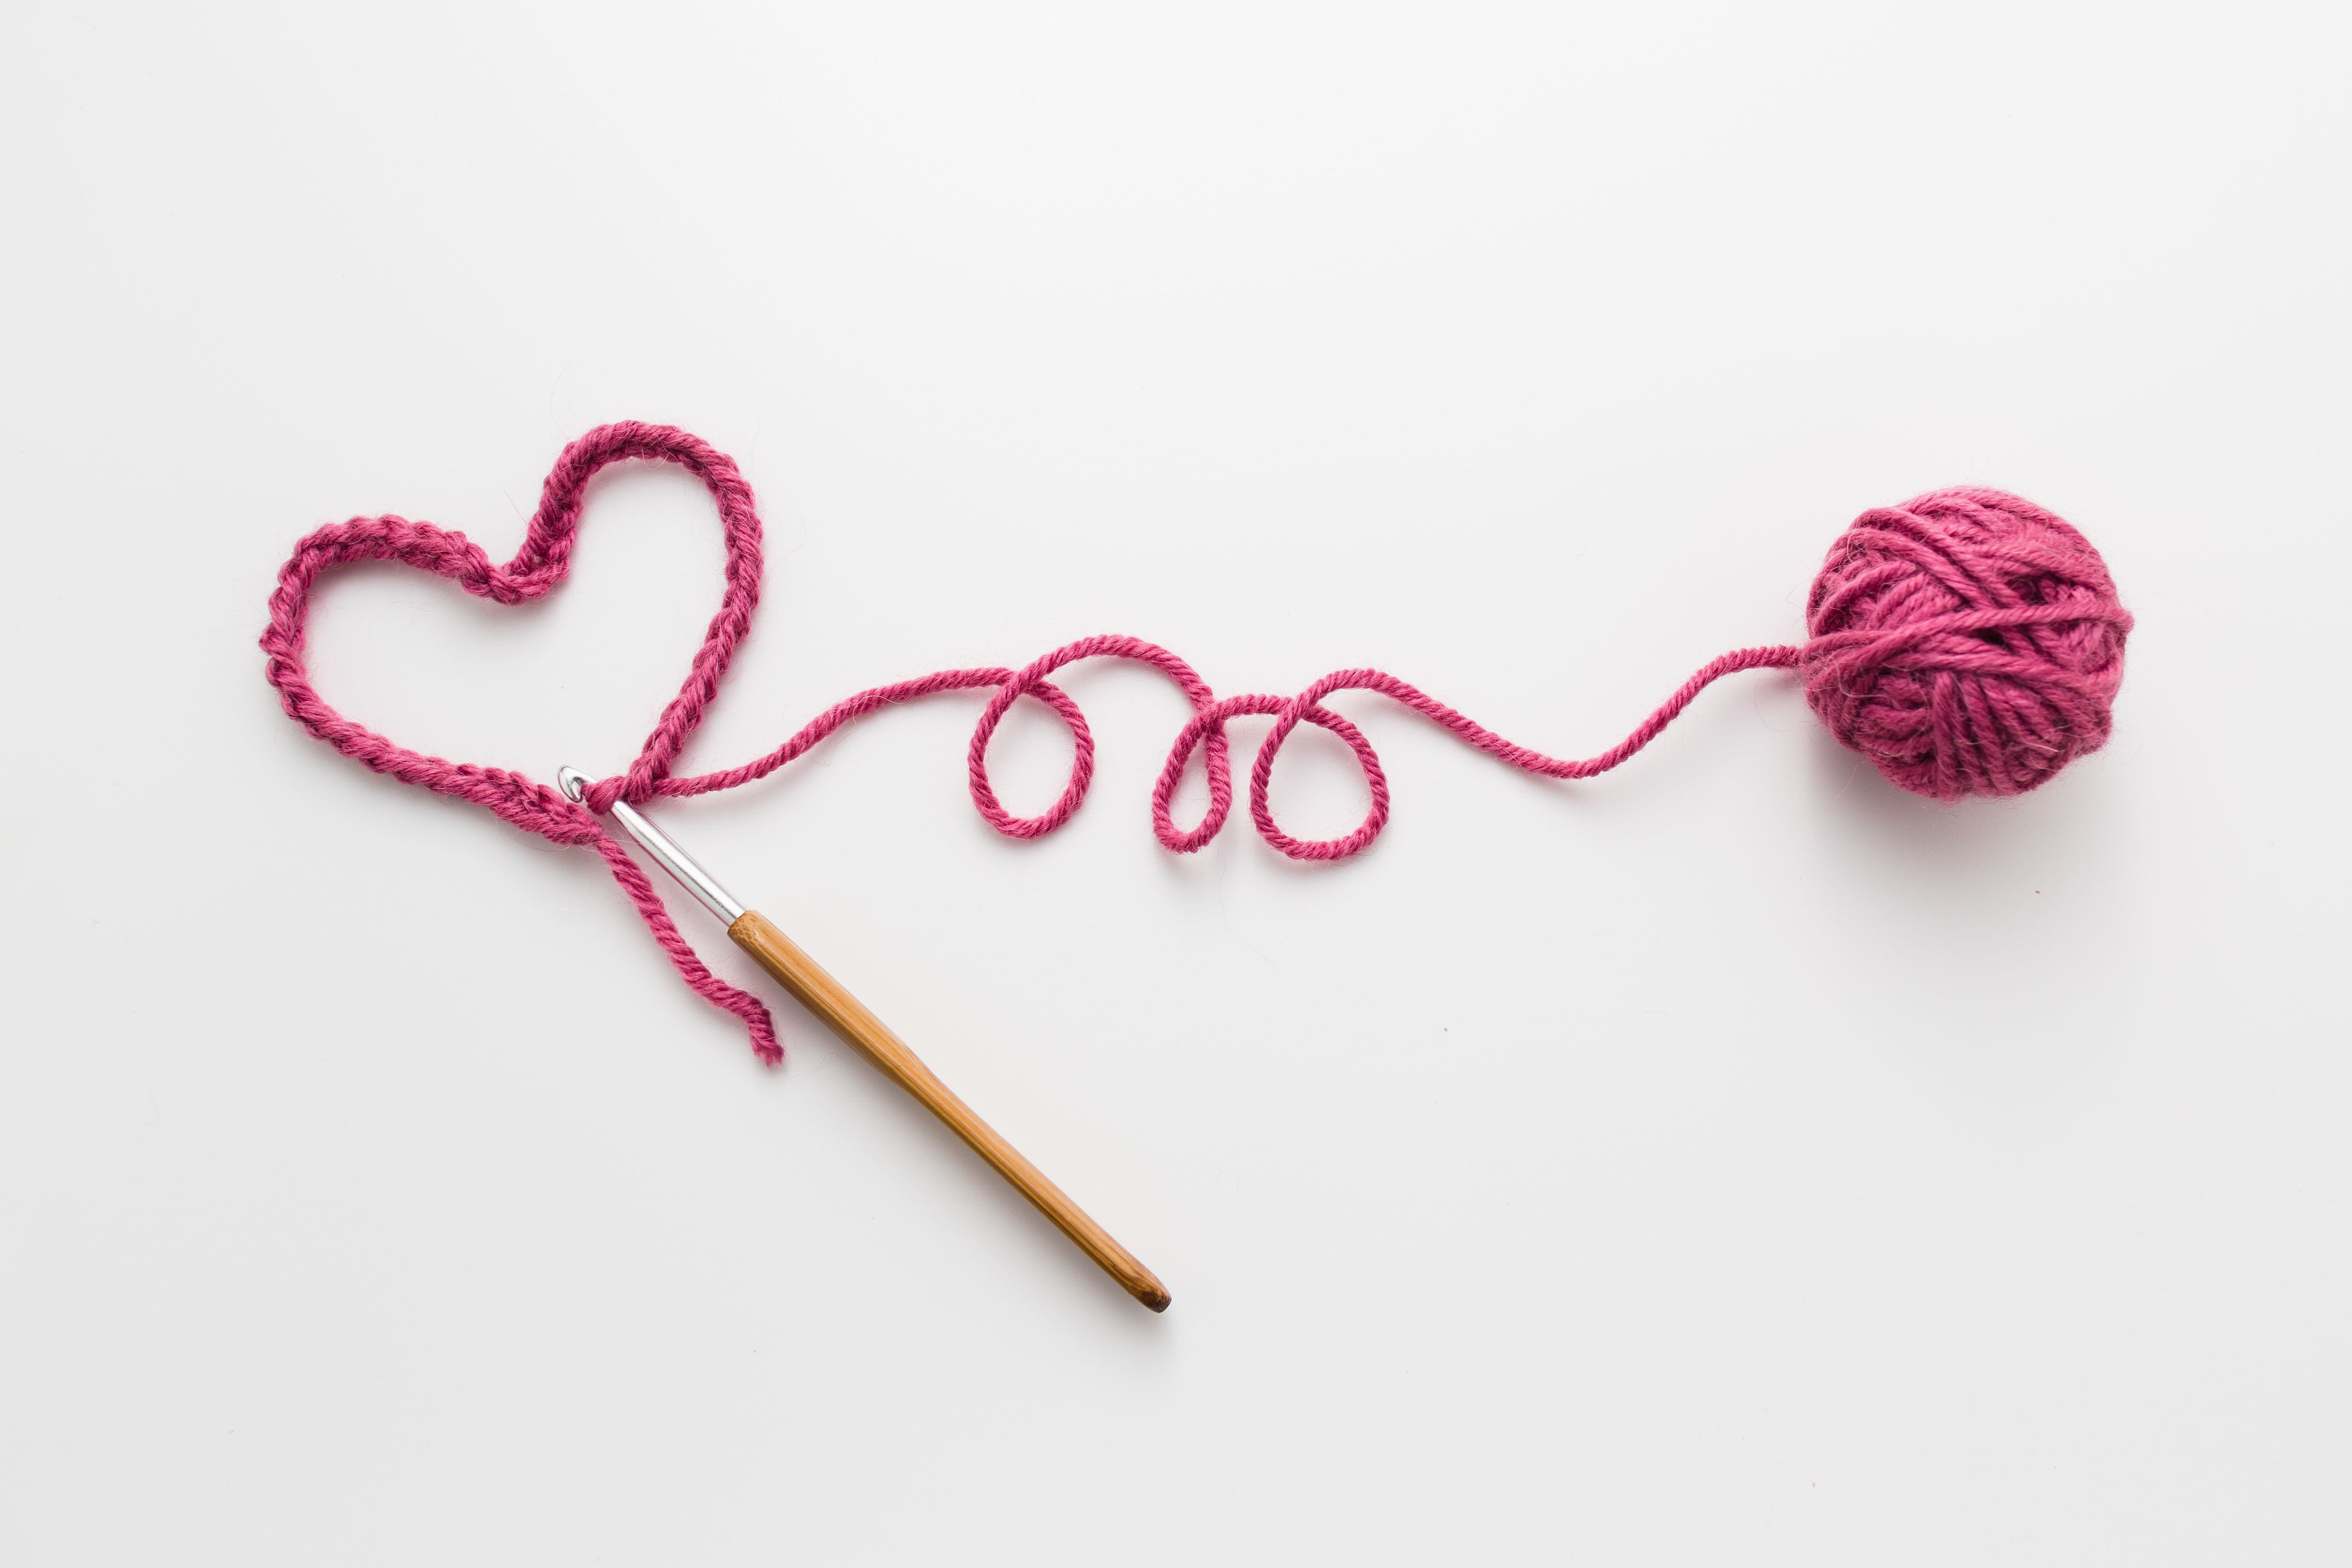 How to crochet for complete beginners